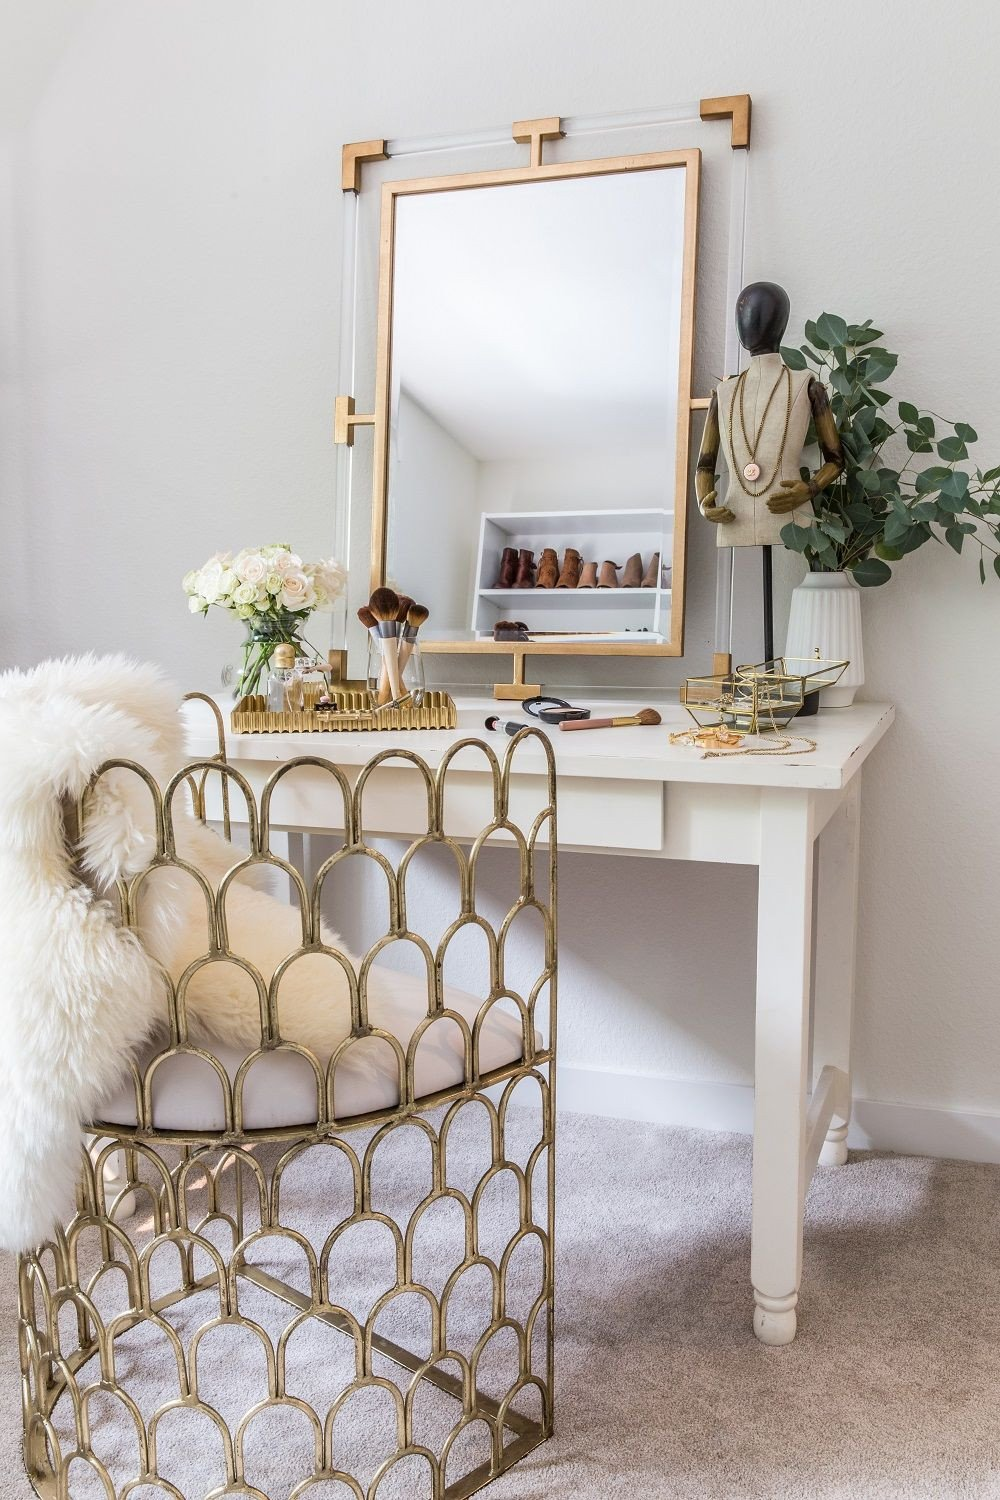 Make Up Vanity for Bedroom New White Glam Makeup Vanity